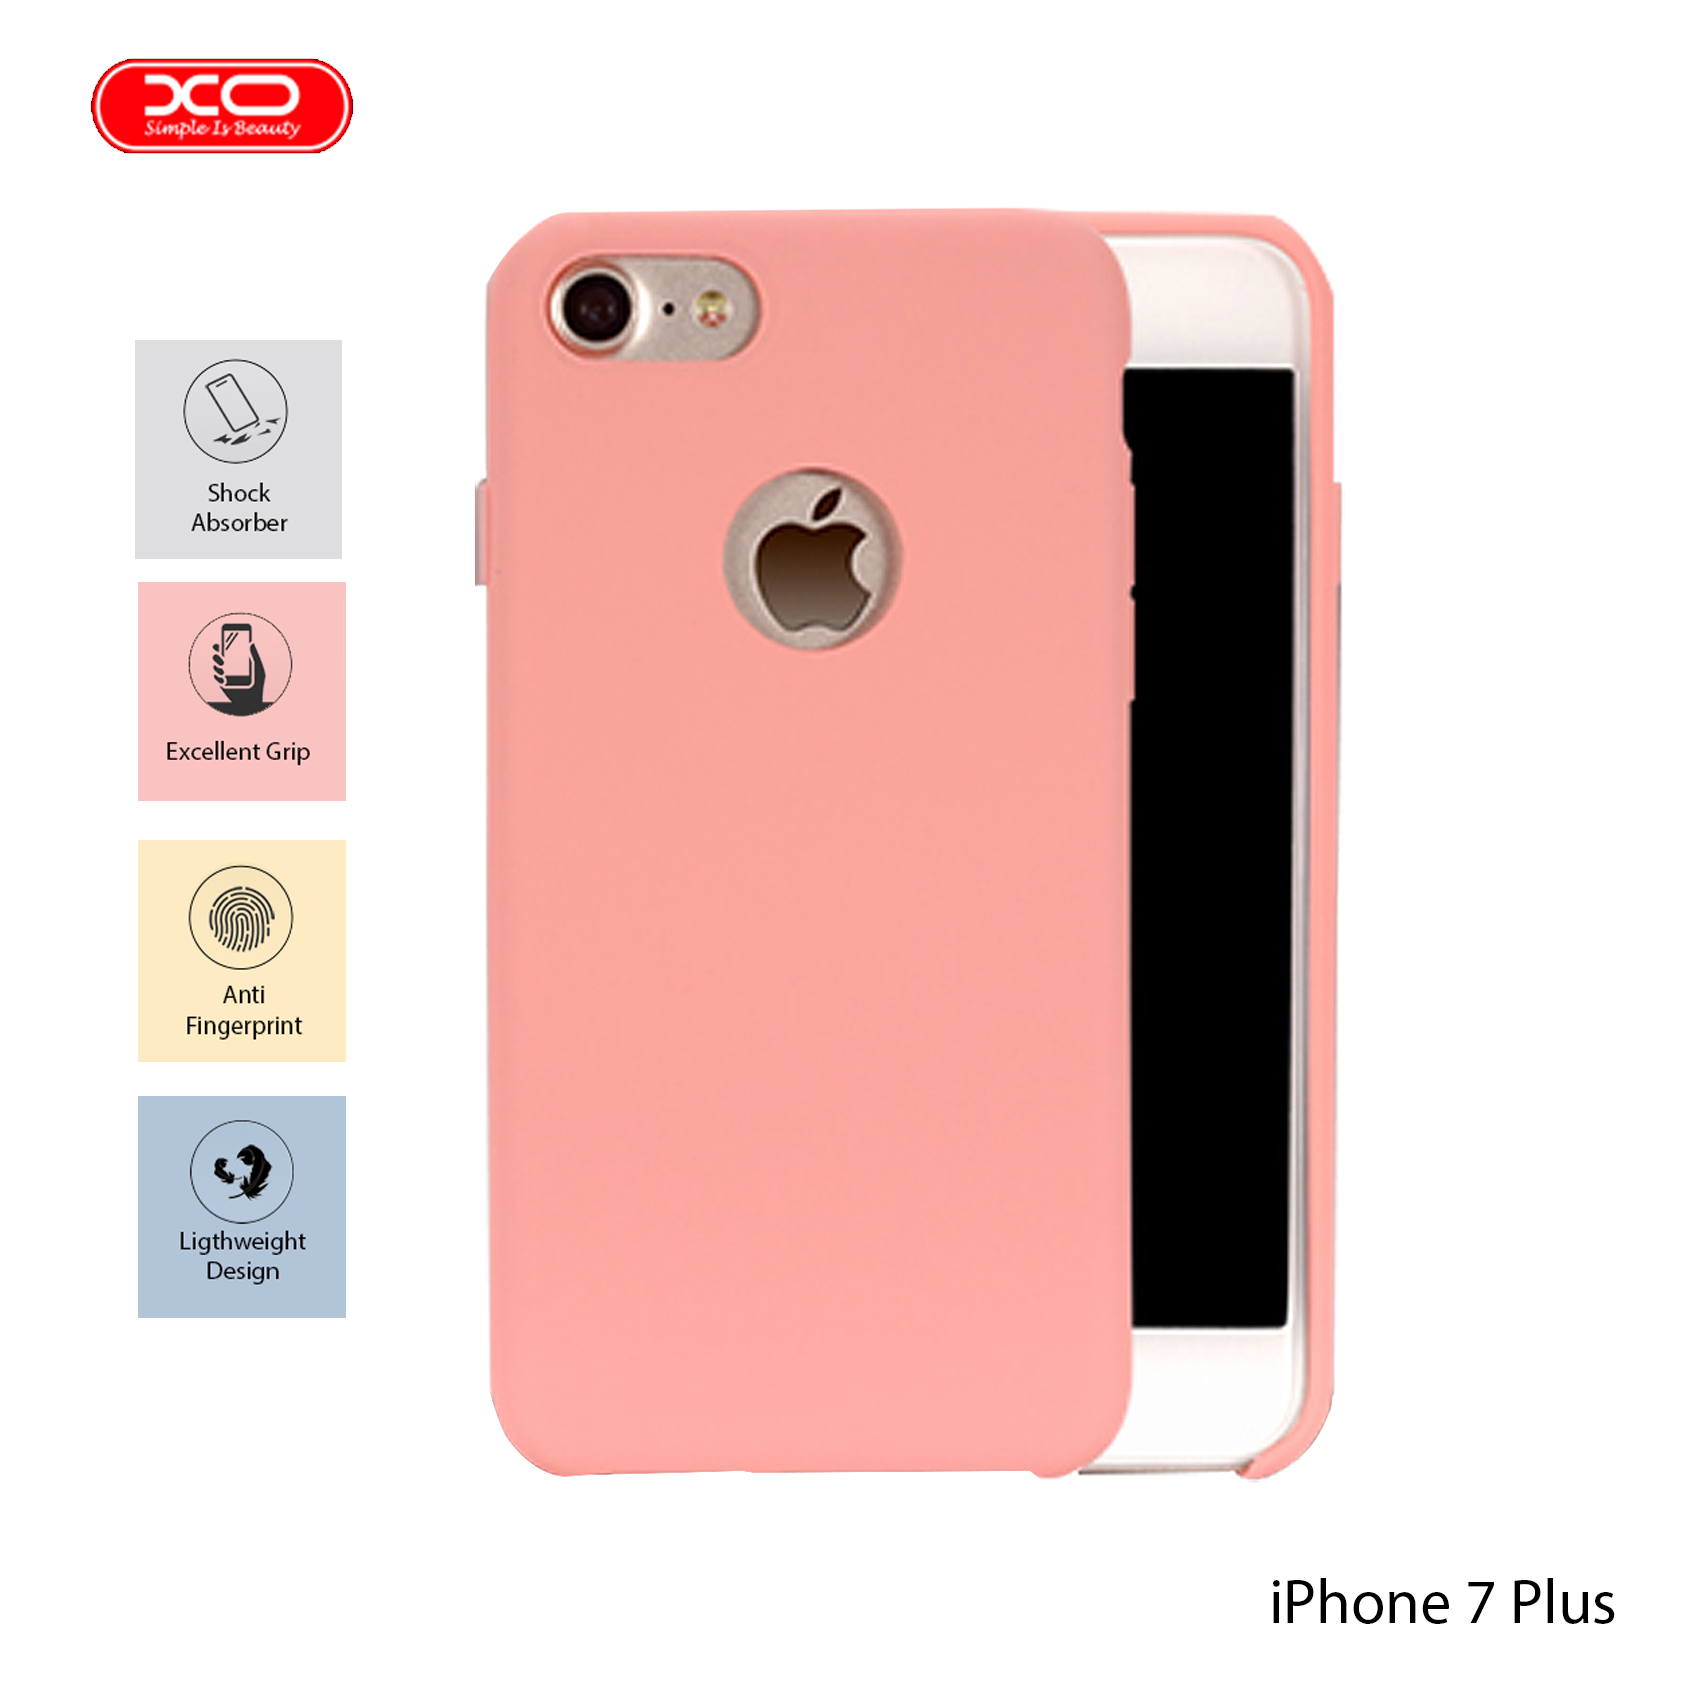 XO Magnetic Silicone Case for iPhone 7 Plus - Pink